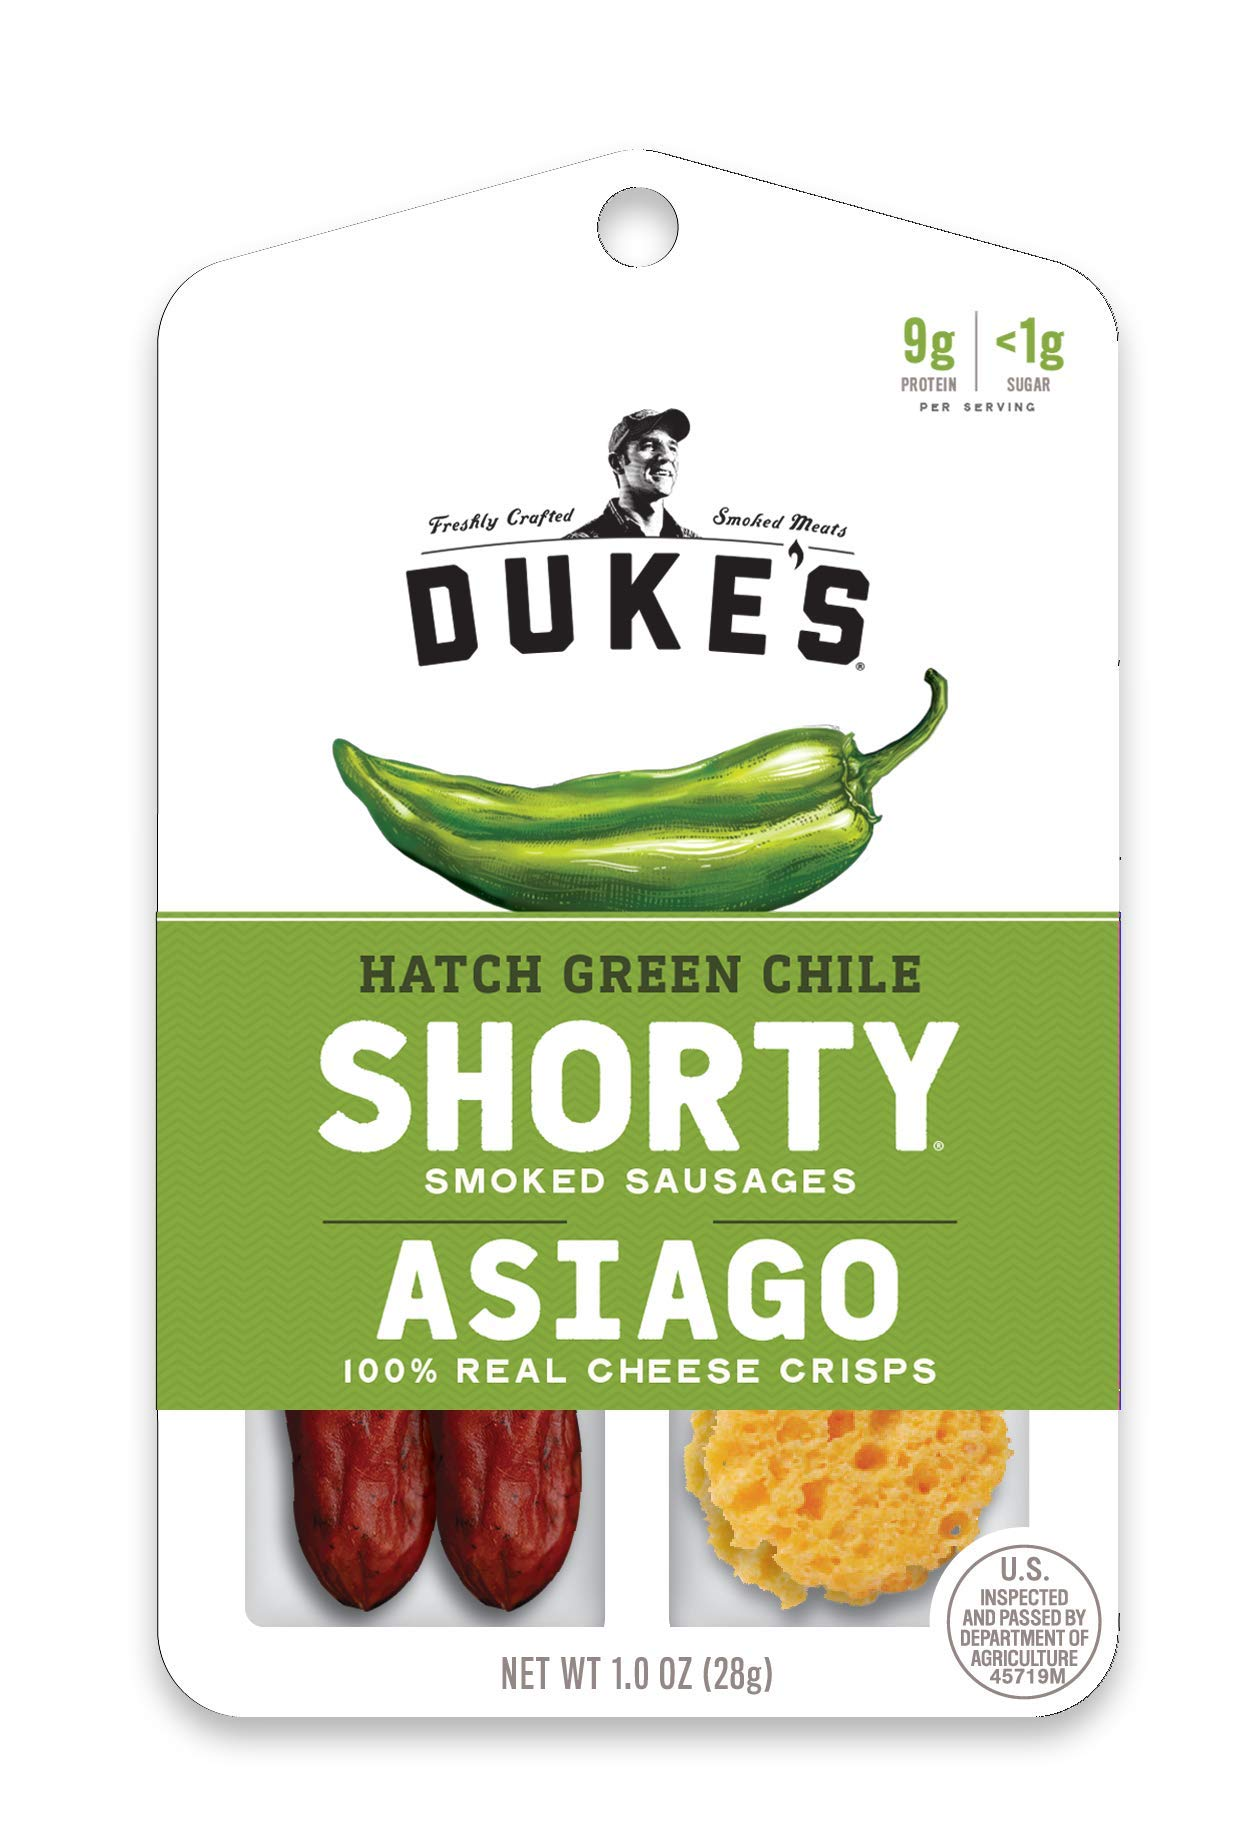 Duke's Hatch Green Chile Shorty Smoked Sausages & Asiago Cheese Crisps, 1 oz. 12Count